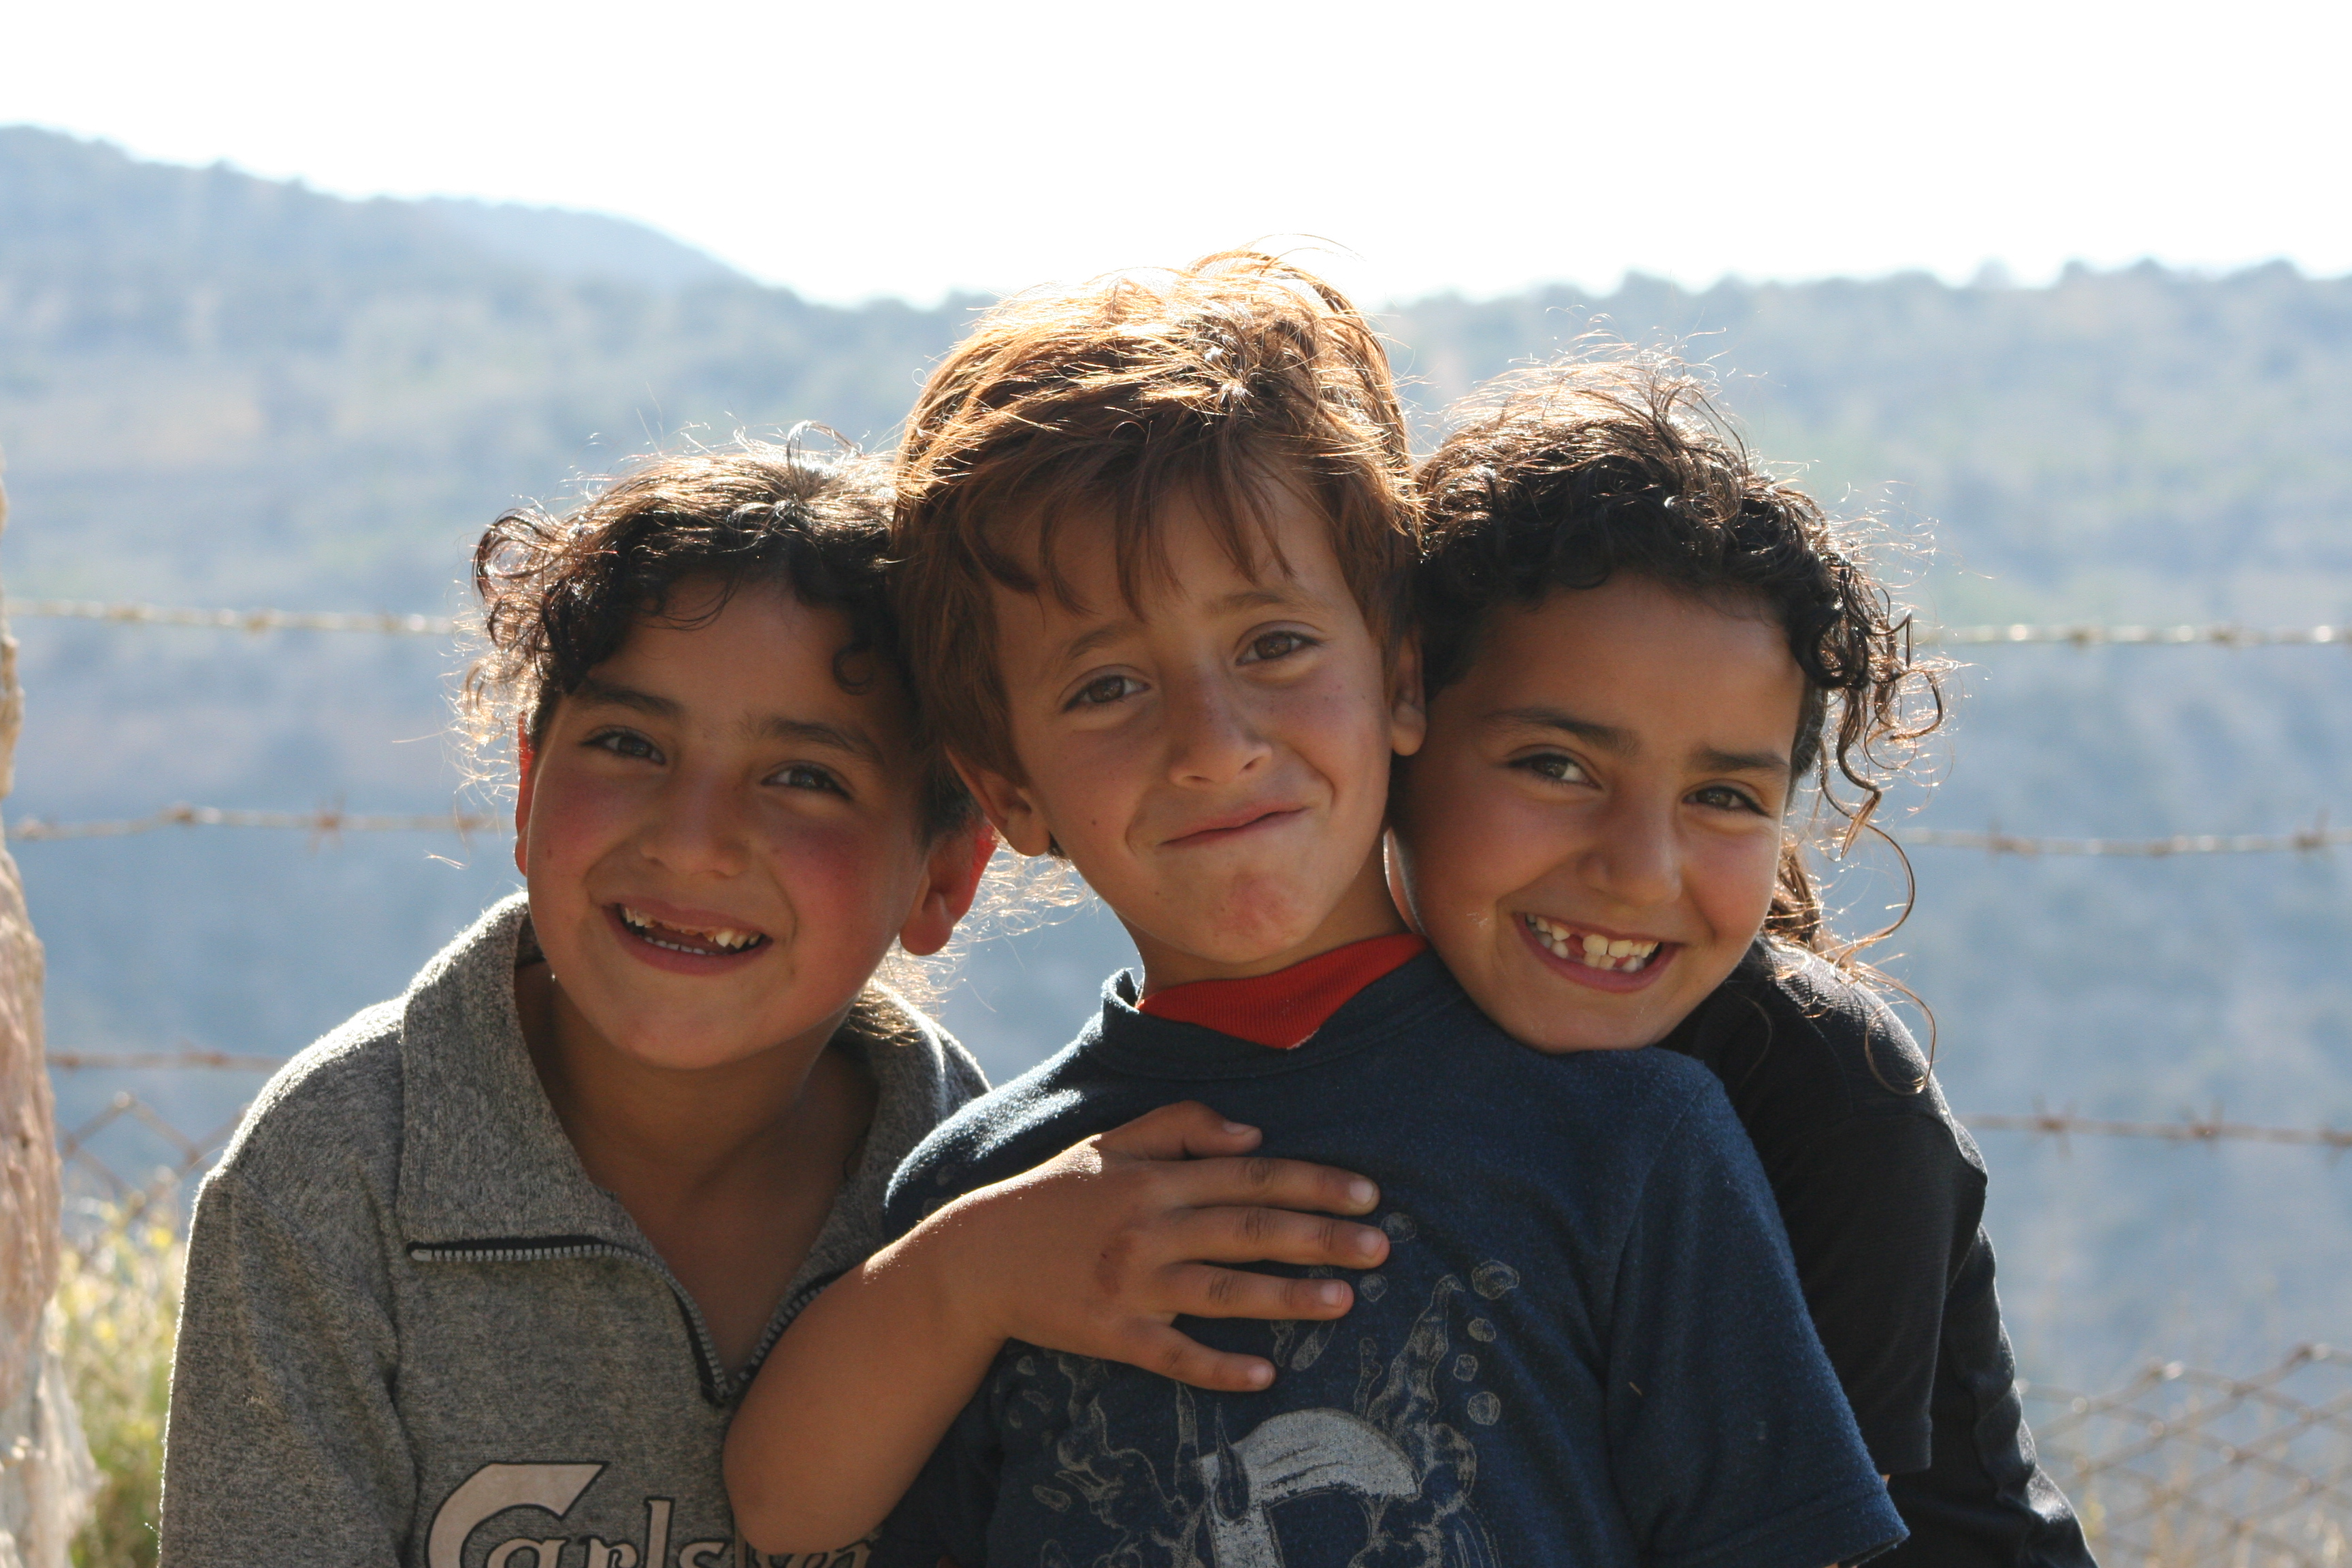 Children of Dana: future rangers?